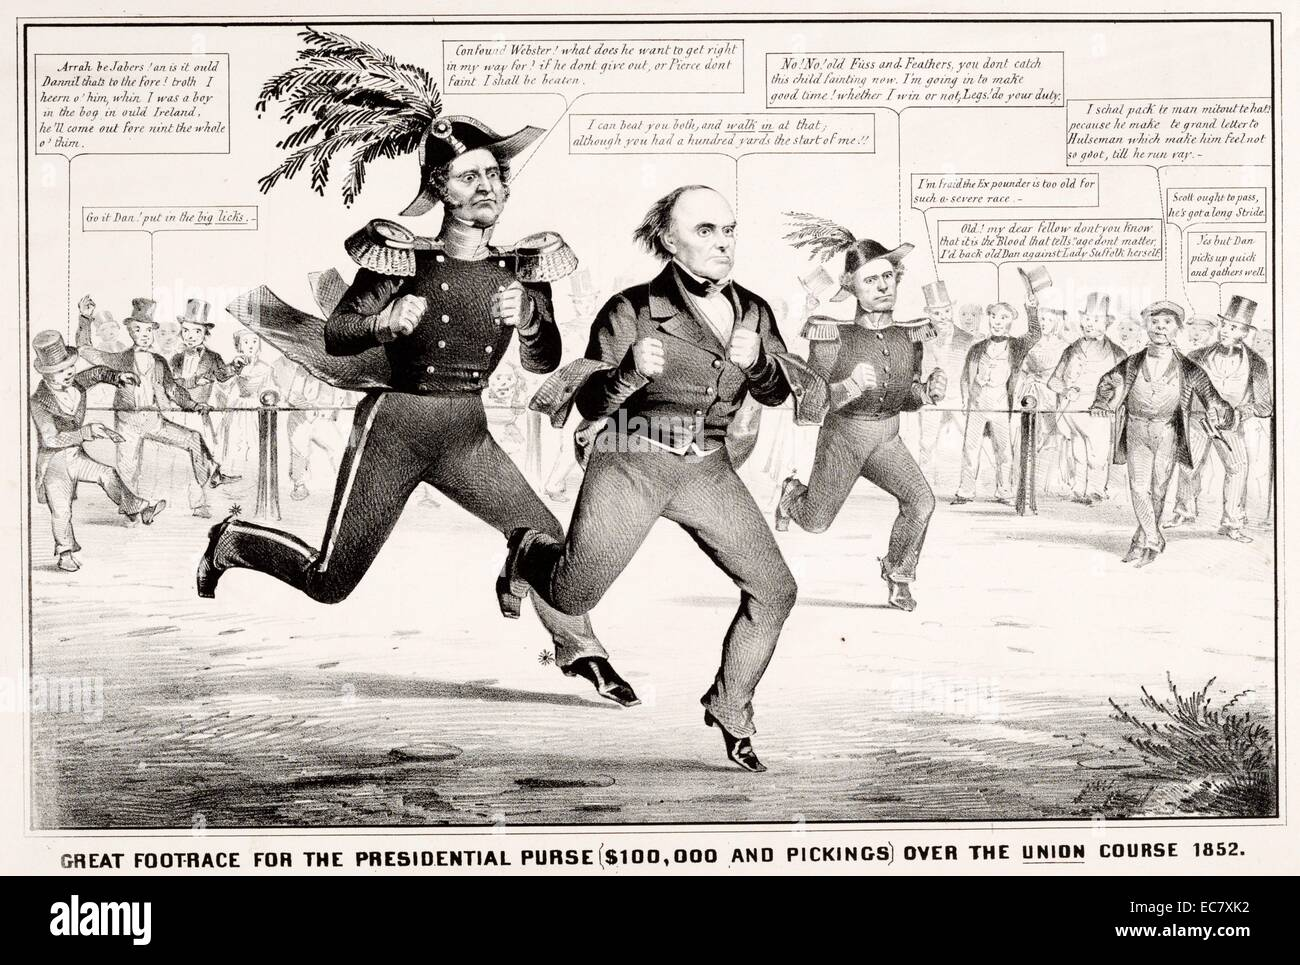 Satire on presidential election of 1852